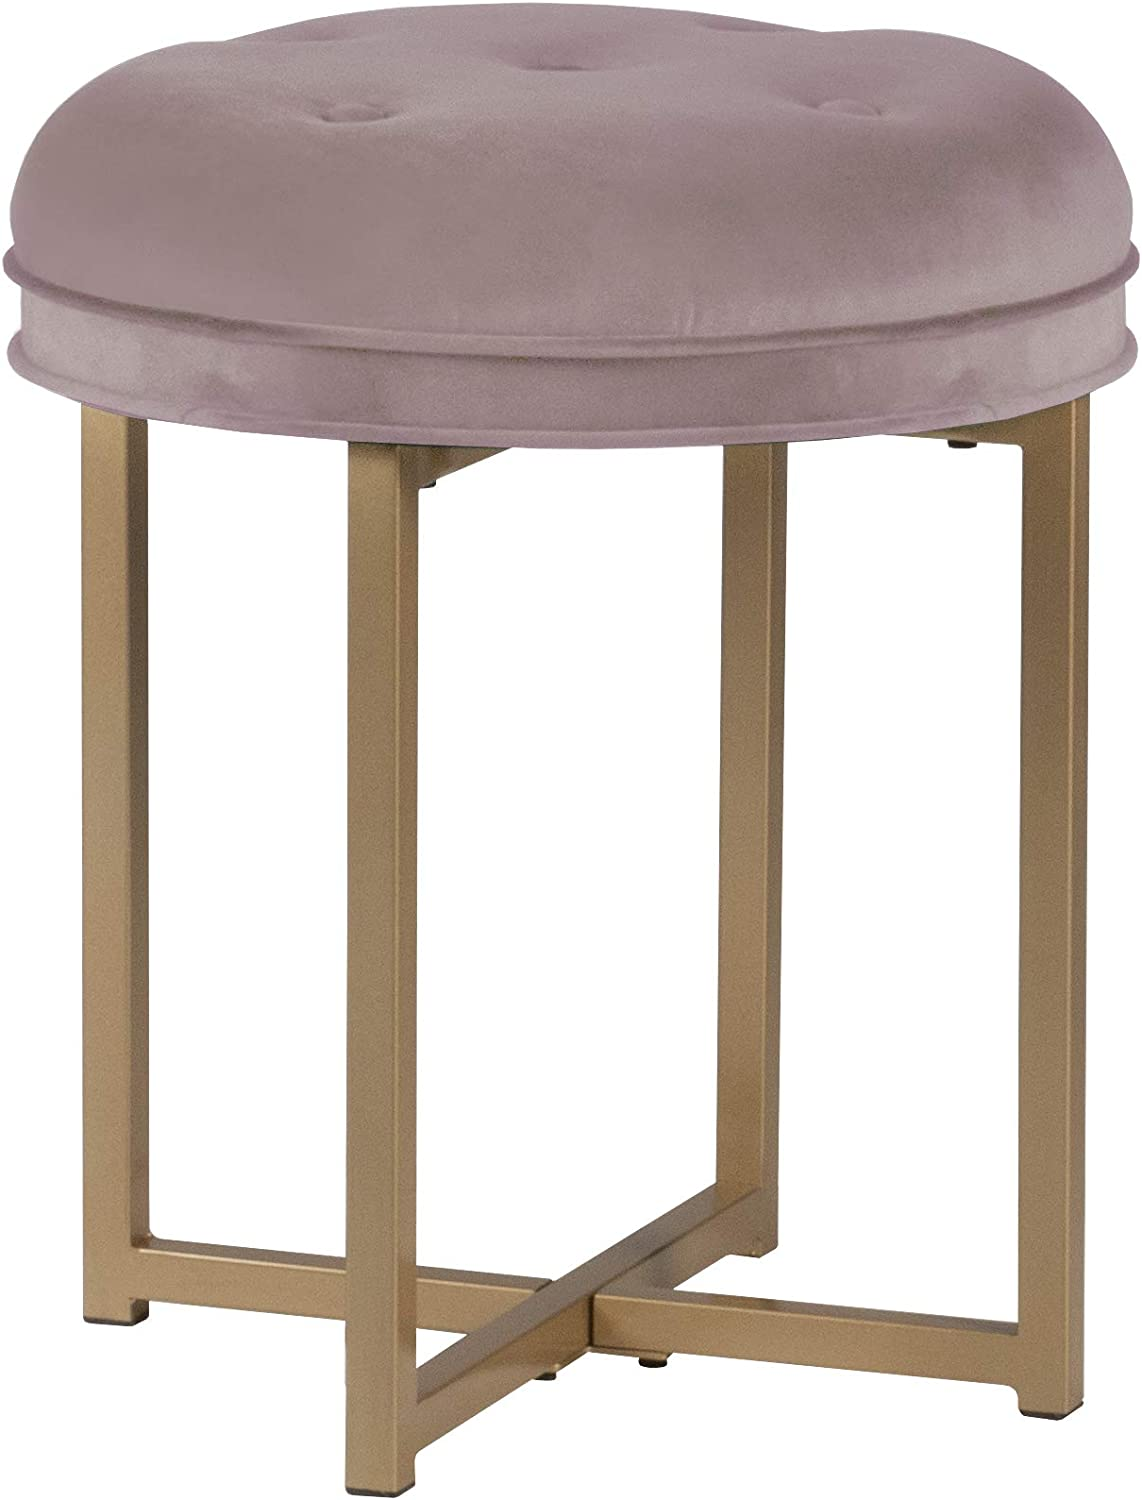 Hillsdale Furniture Vanity Stool, Blush Pink